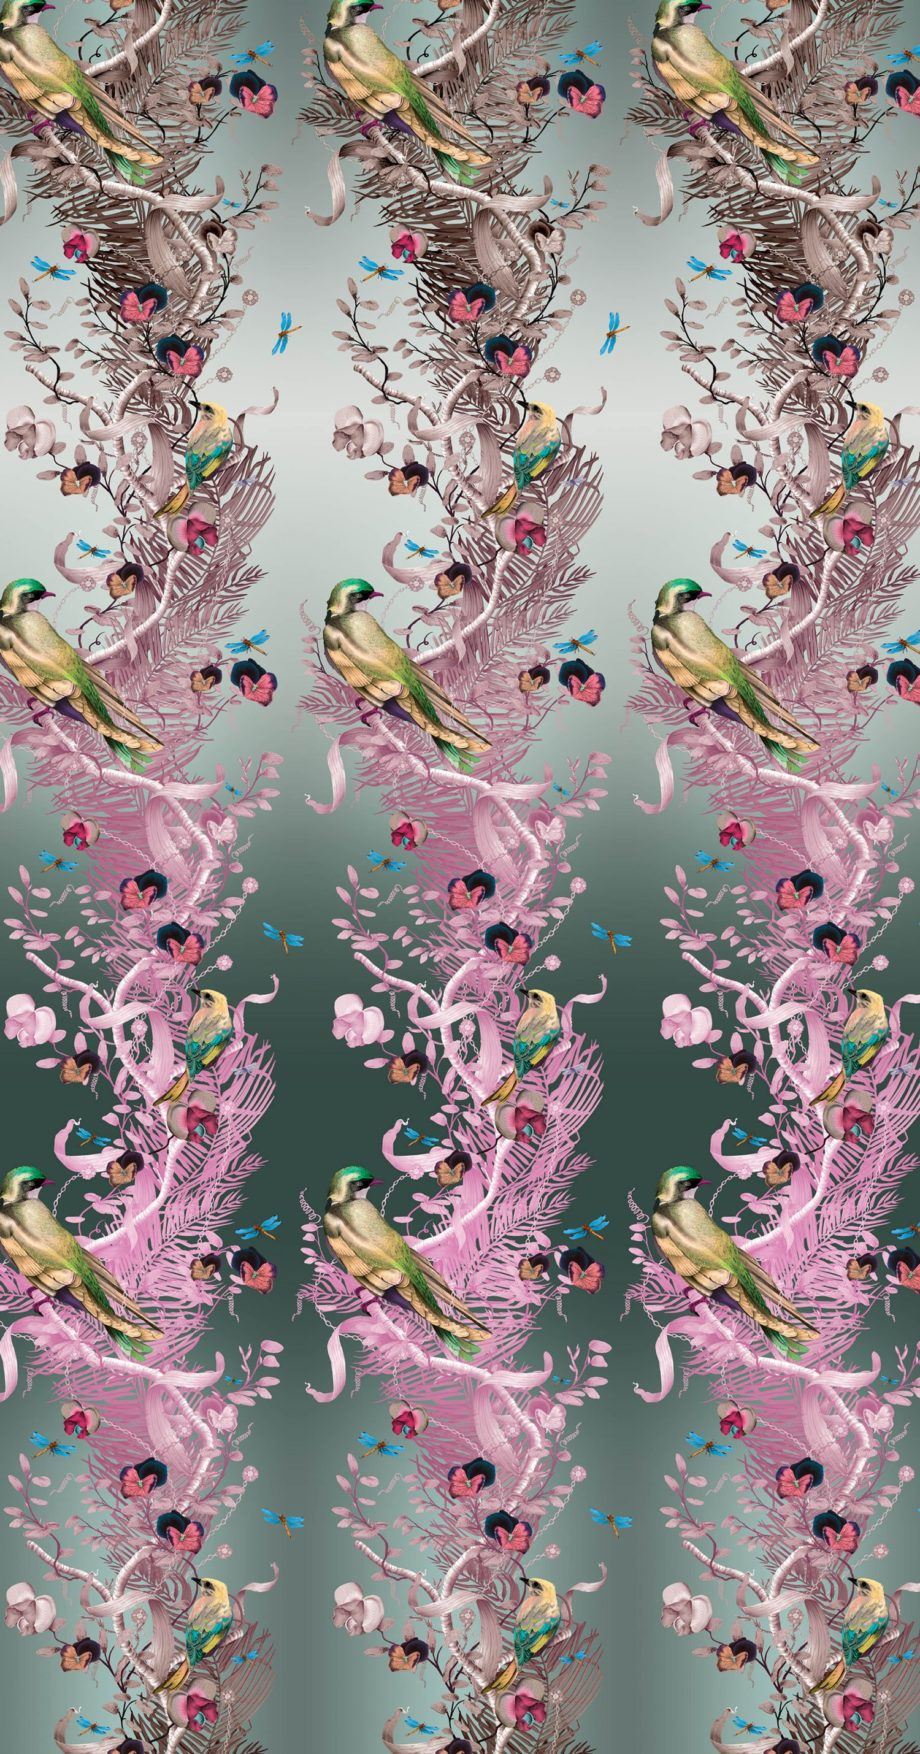 Birds-in-Chains-8941-302-repeat-image